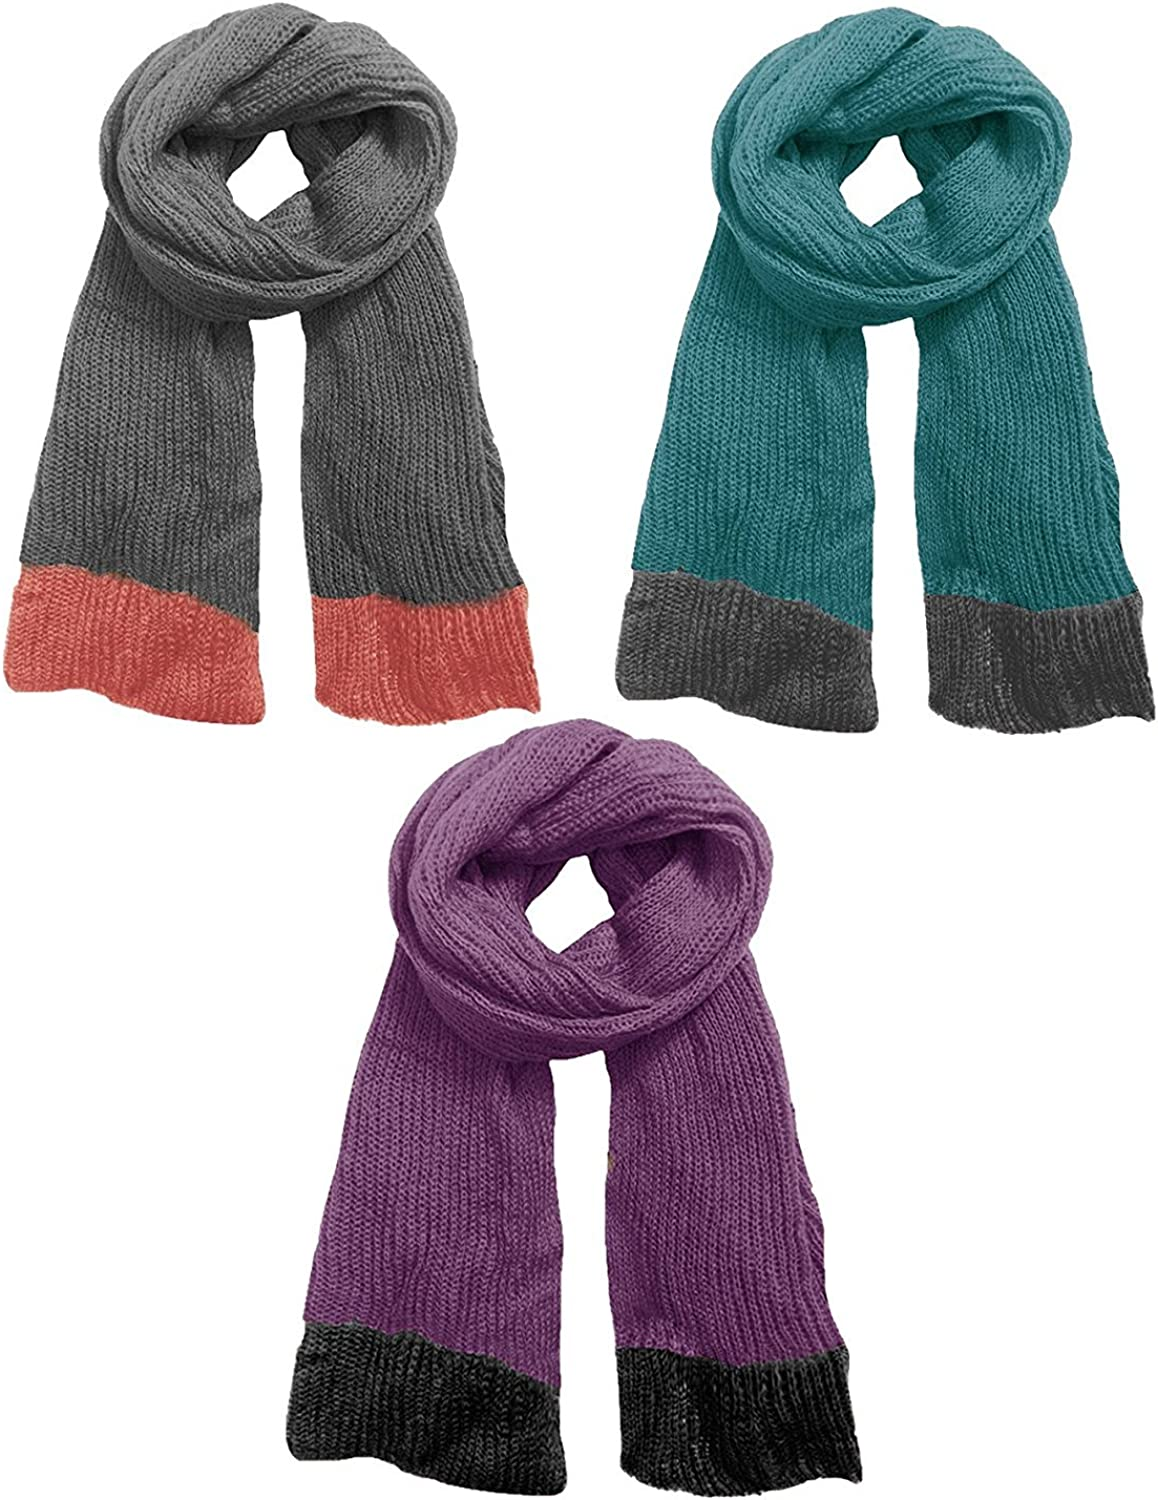 Peach Couture Warm and Cozy Unisex Fashion Knit Long Loose Hand Knit Scarf Wrap Shawl